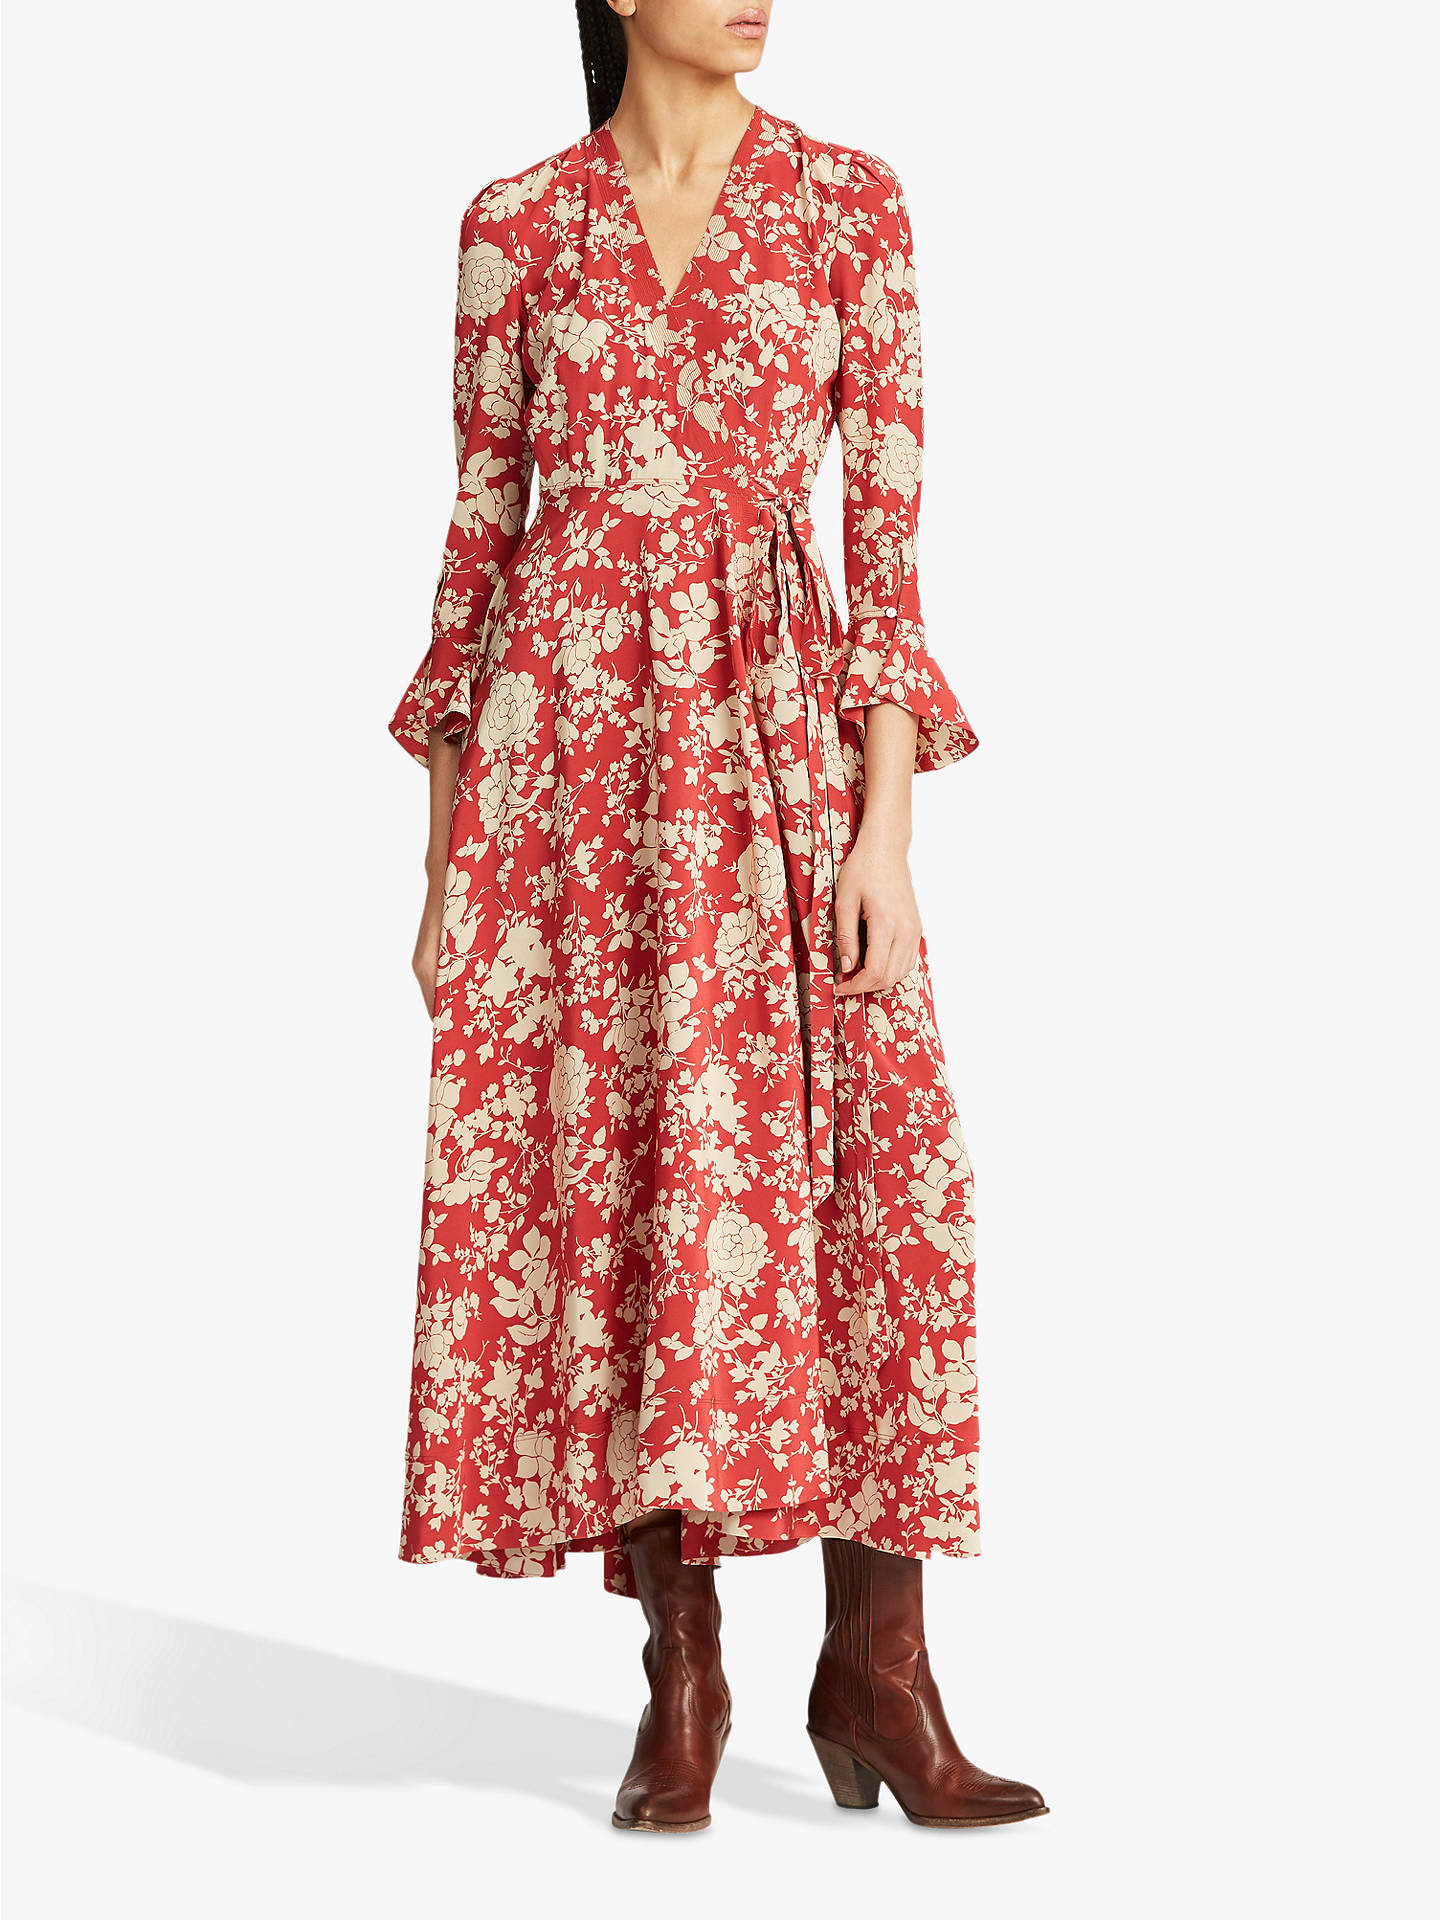 DressRed Floral Ralph Meadow Polo Maxi Print Lauren K1TlFJ3c